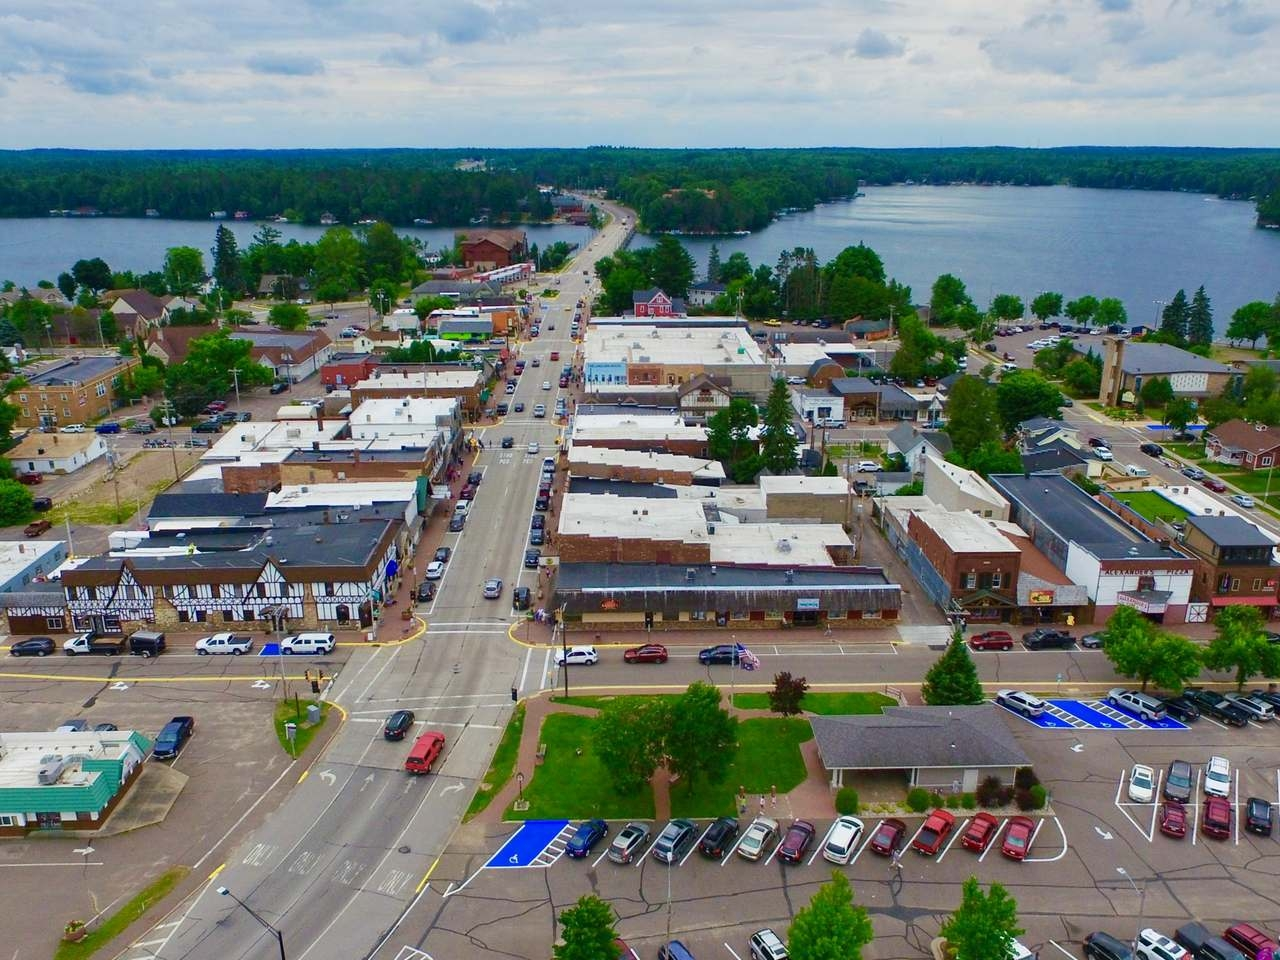 """Thriving Downtown Minocqua retail store with over 10 years of business. Retail store encompasses 1500 sq ft and comes with large attached garage/loading area and expansive basement for dry storage and inventory. Also included are 2 upper unit apartments for extra income potential. These upper units are both 2 BR 1 BA with a large storage unit separating them. """"A Step Up"""" is well known in the area for decorating homes with the """"Northwoods Charm"""" everyone is looking for. Business comes with great books and nets well. Property is situated in the heart of downtown in the most high trafficked area. The inventory fluctuates and will be addressed outside of the deal."""